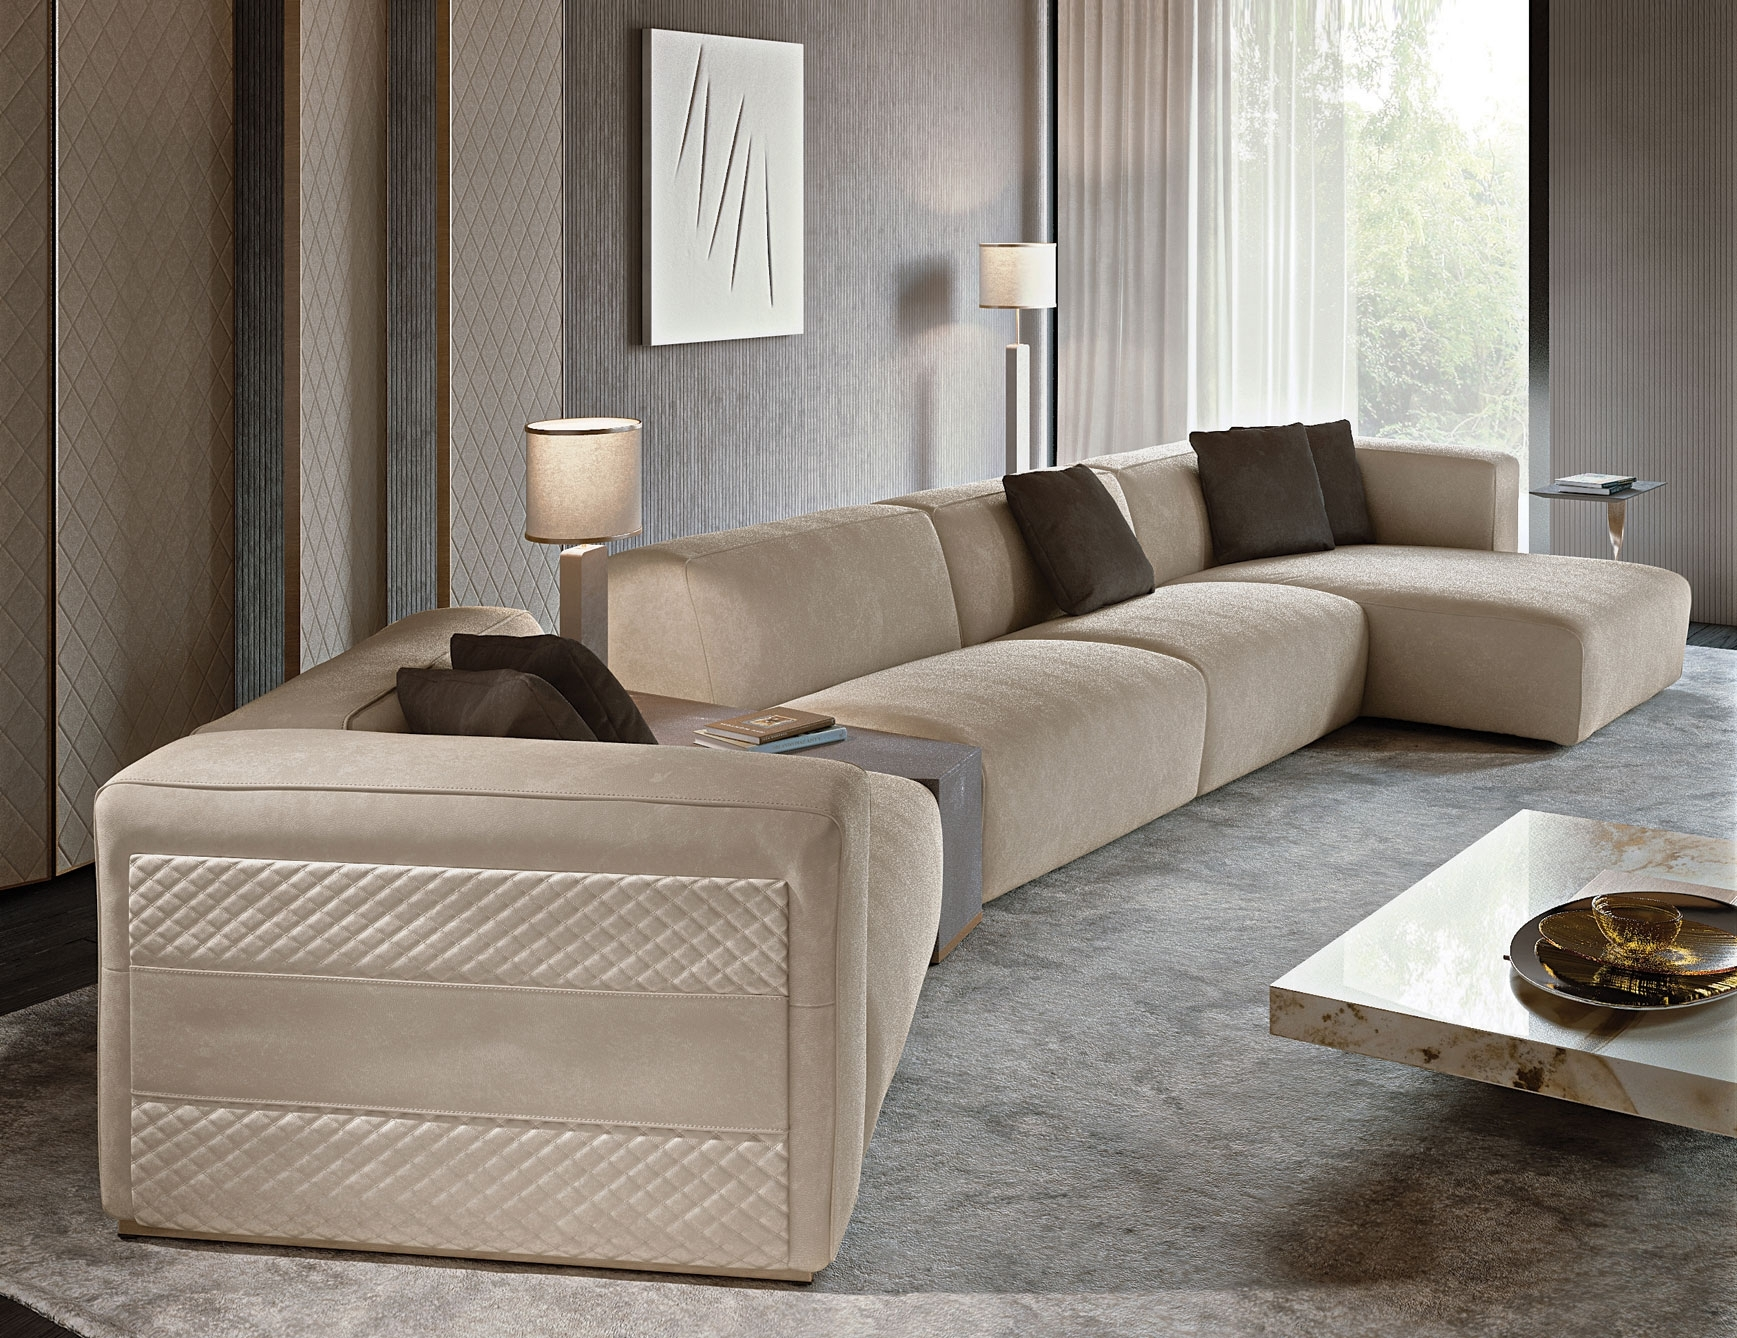 Nella Vetrina Rugiano Freud Sectional Sofa In Suede Regarding High End Sectional Sofas (View 3 of 10)